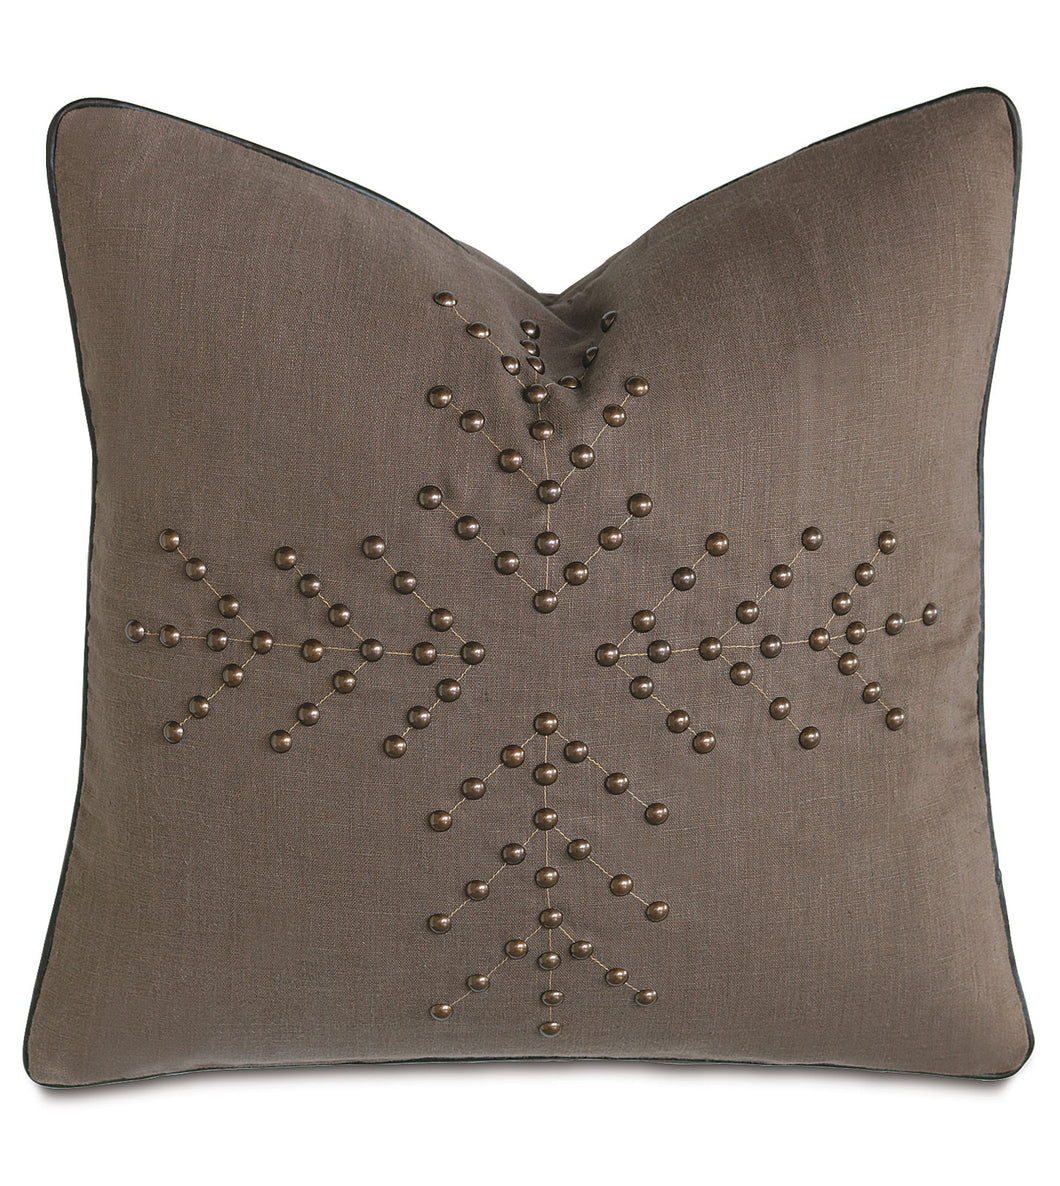 Linen Mountain Lodge Studded Geometric Throw Pillow 20